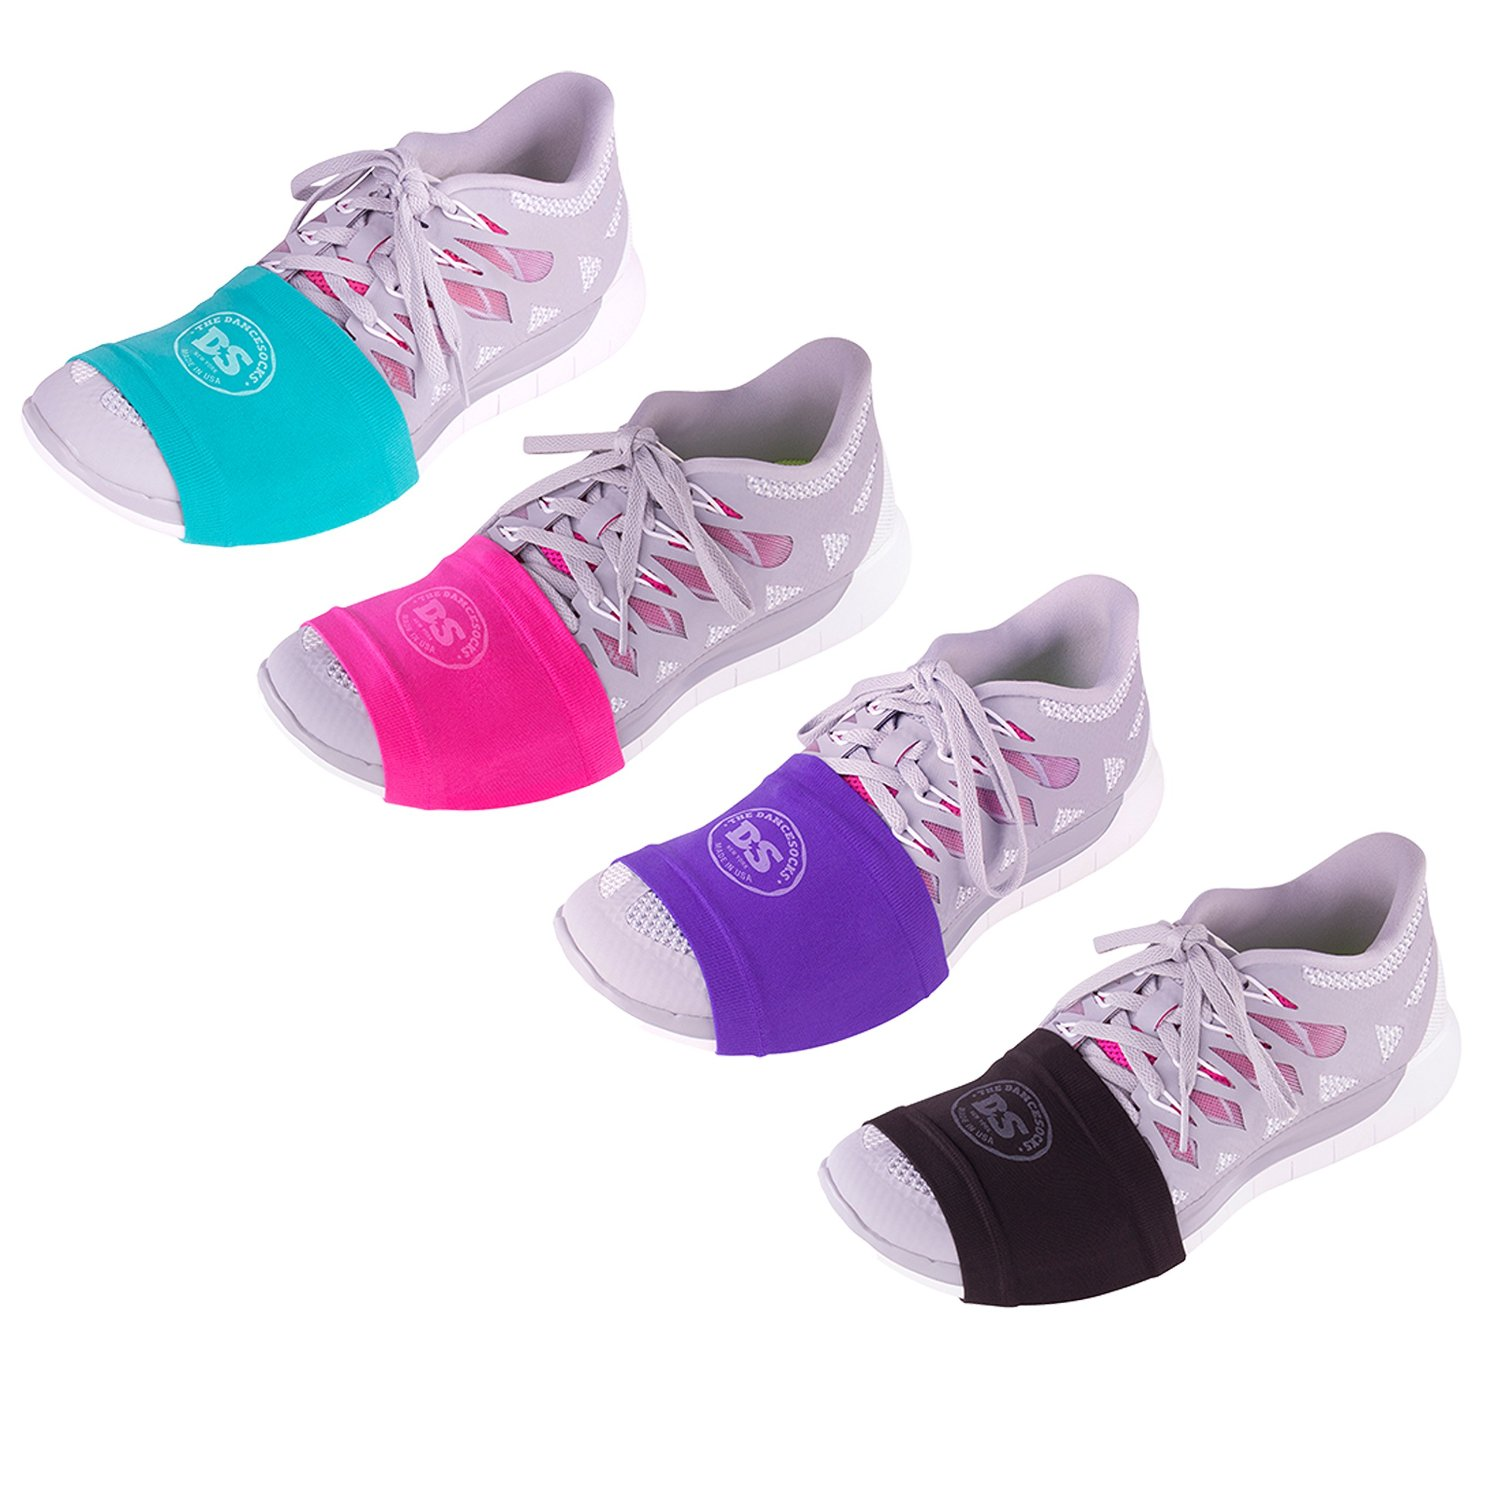 d45a56797e7e The Best Zumba Shoes